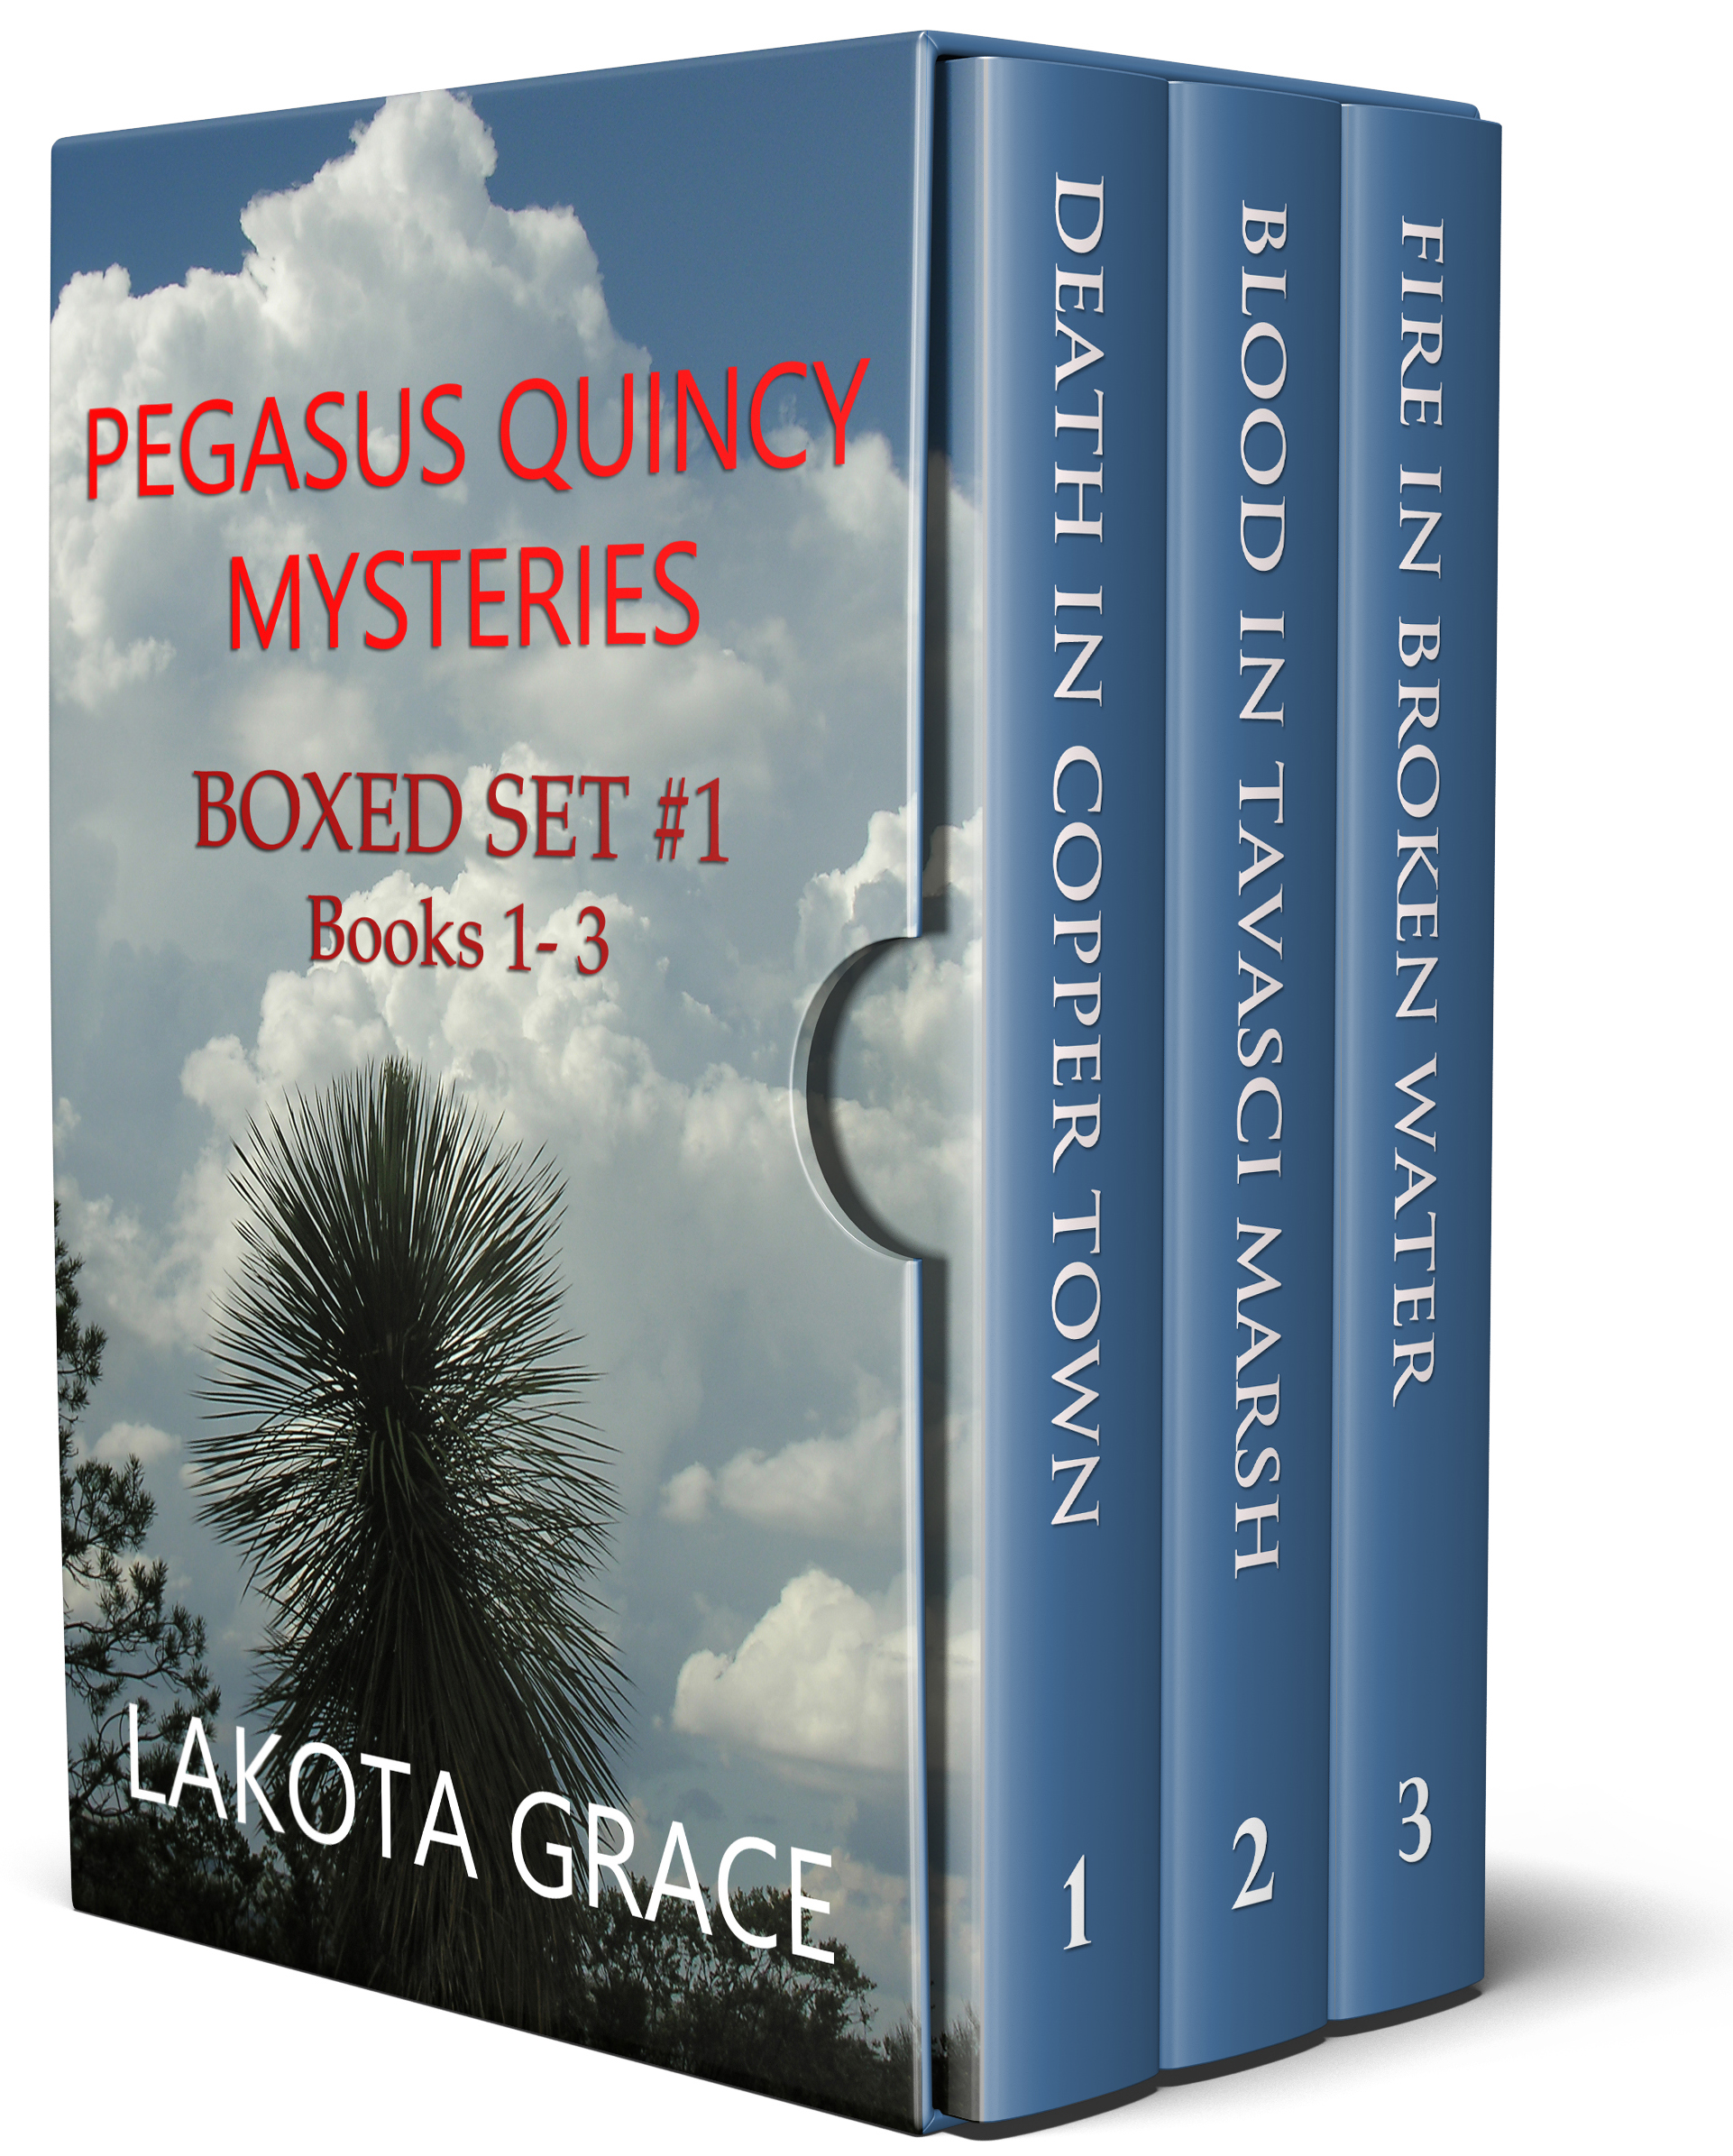 Special! Limited time Offer! Boxed Set of Pegasus Quincy Mysteries